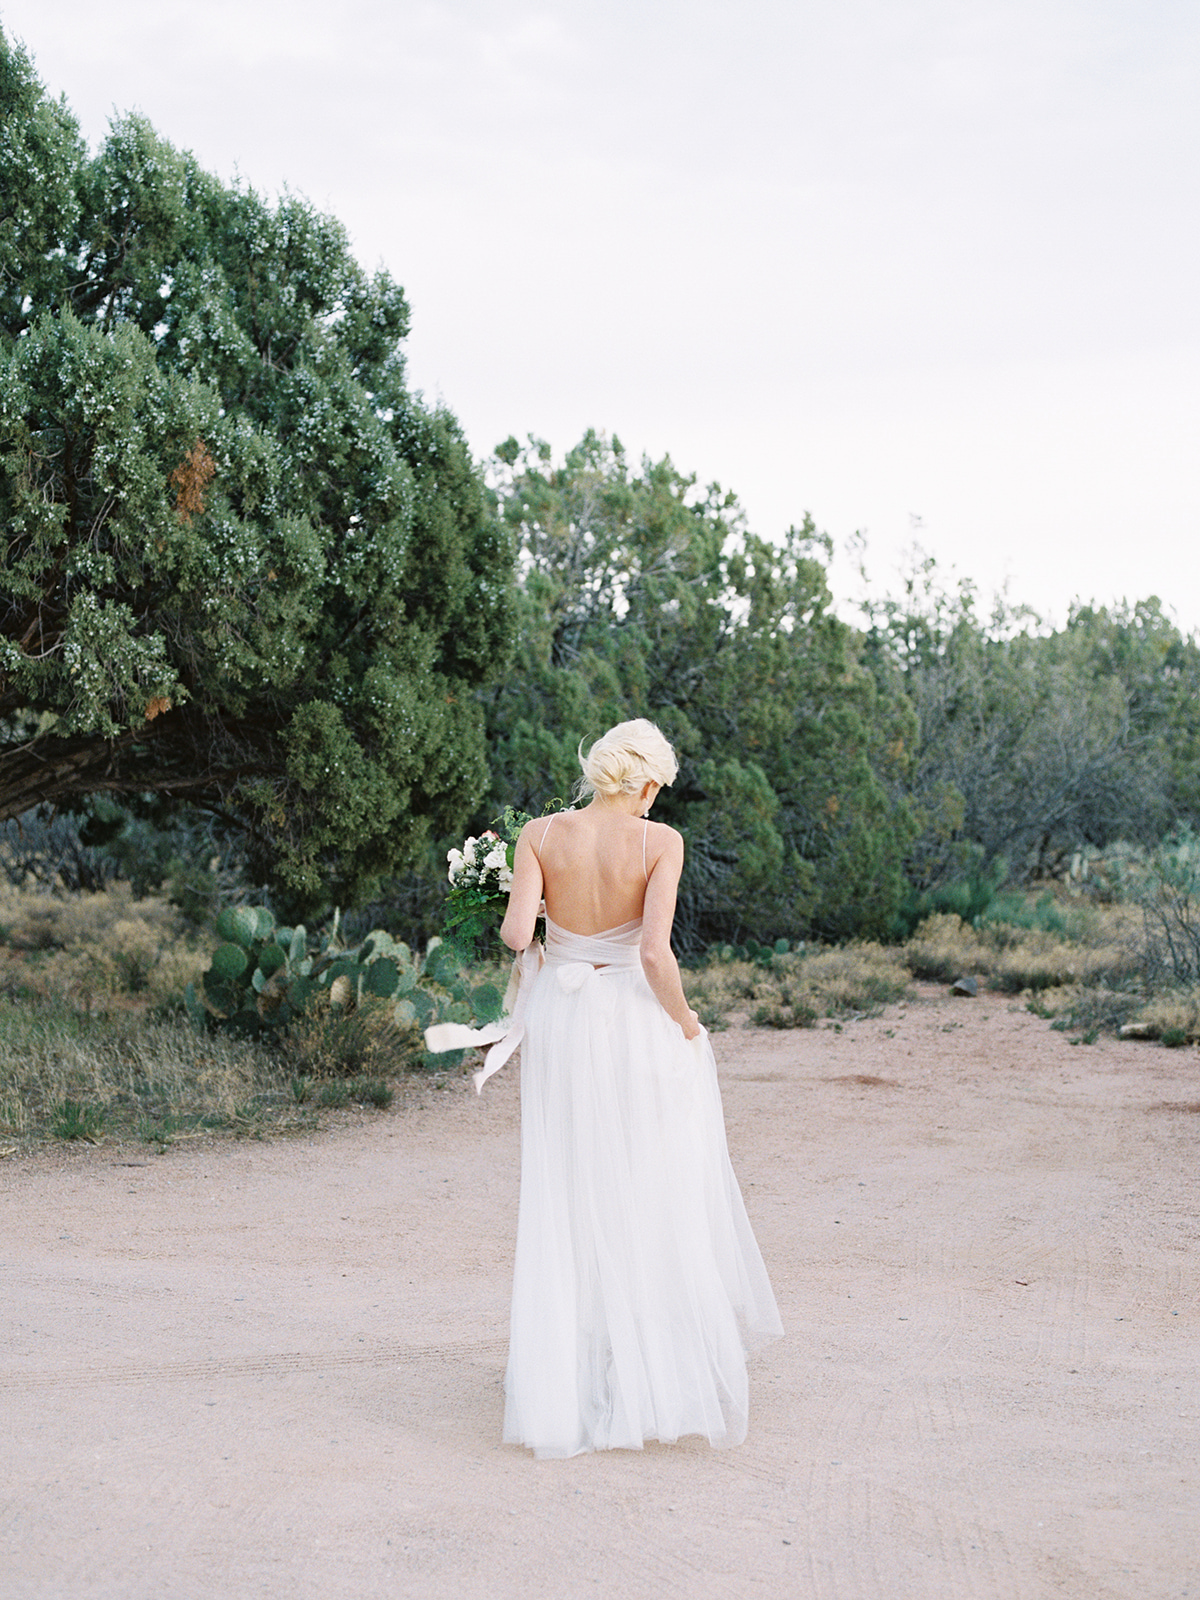 York Sedona Elopement - Ball Photo Co Fine Art Film Wedding Photography-41.jpg